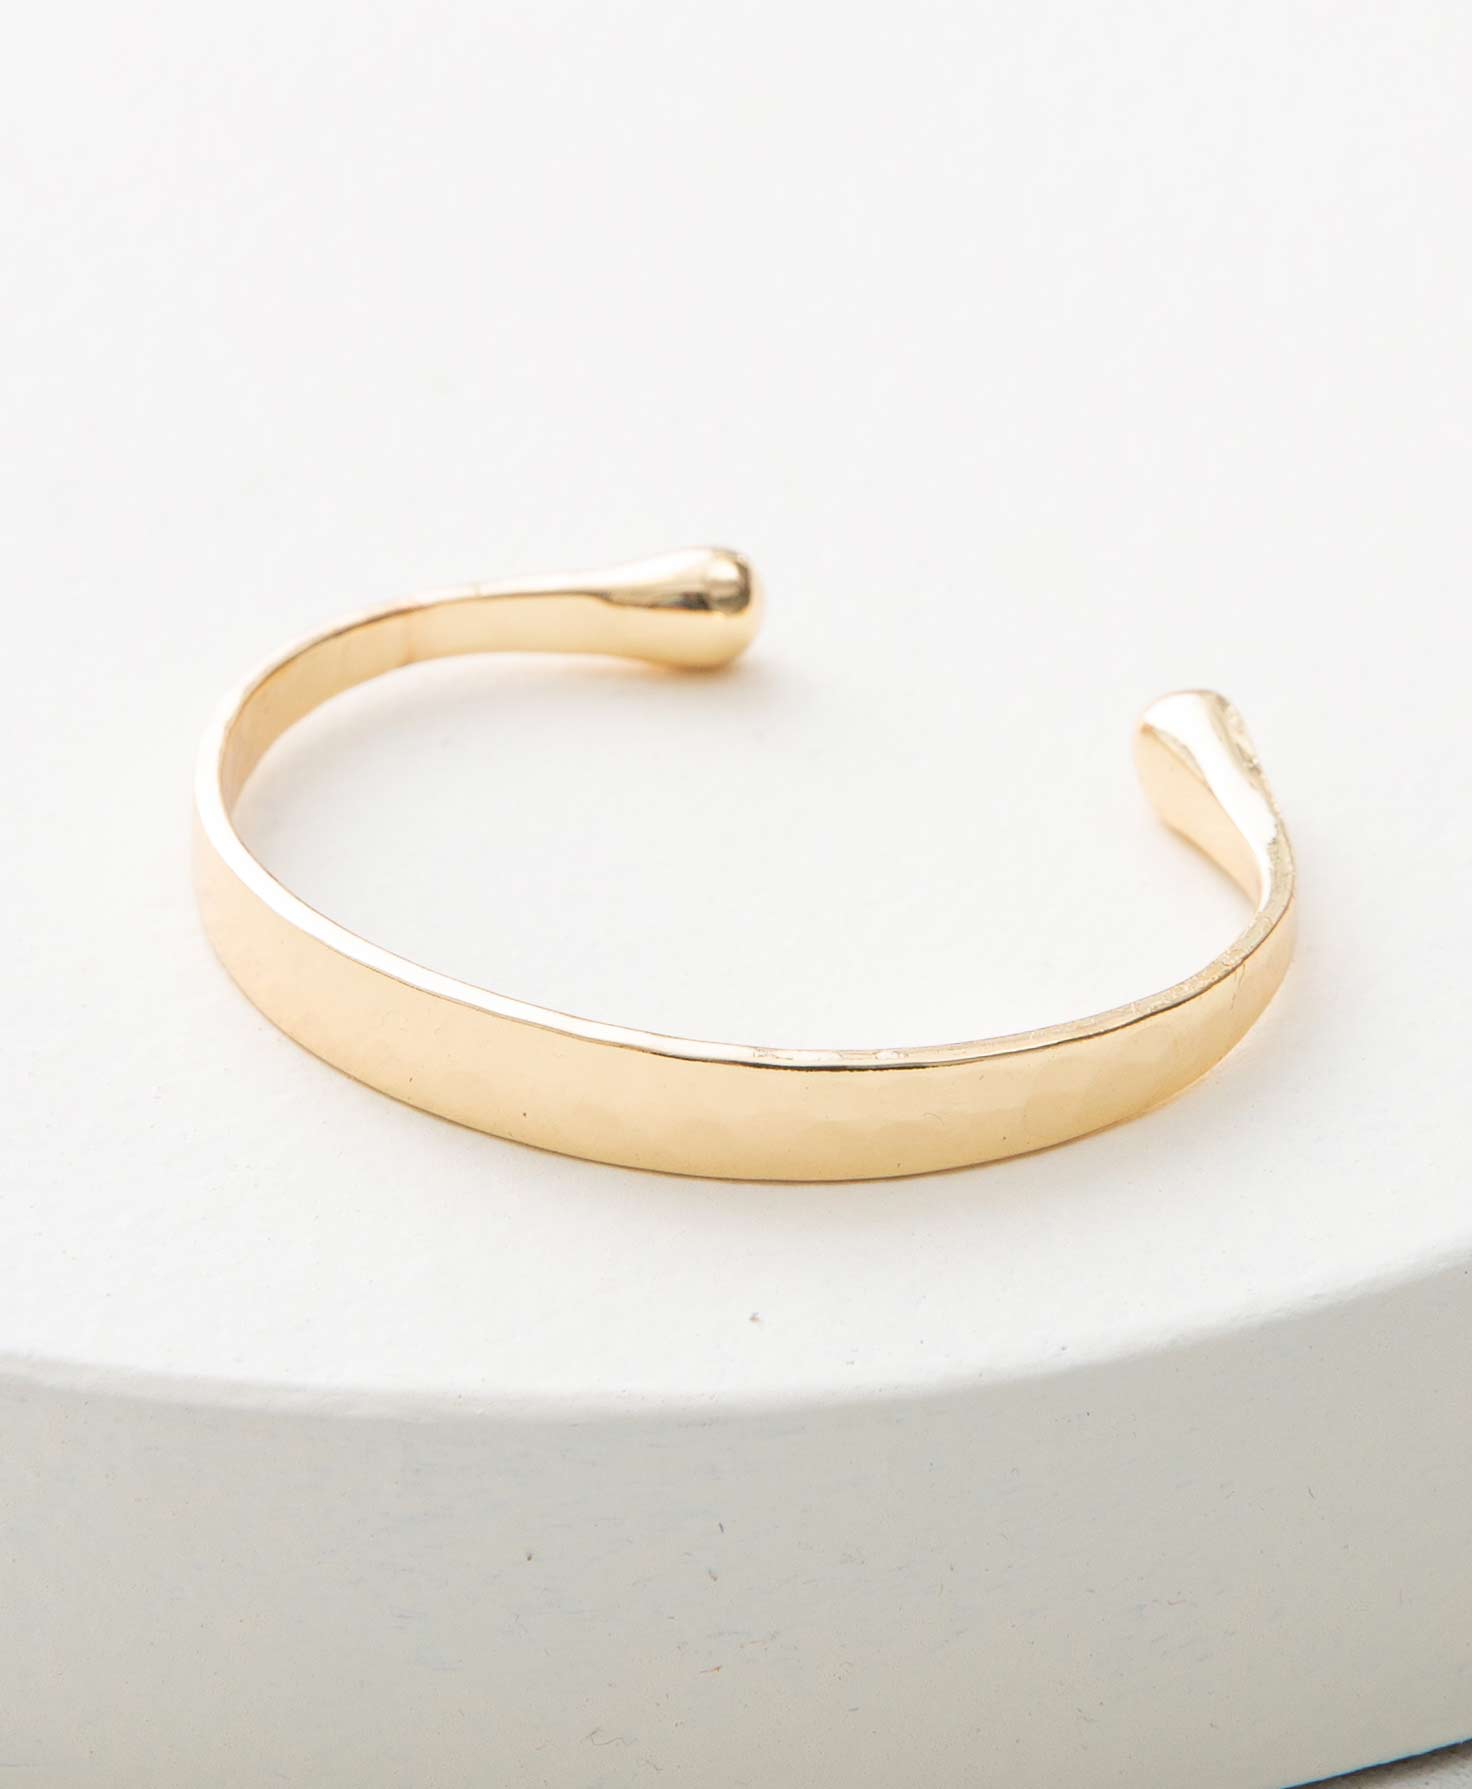 The Loyalist Cuff sits on a white platform. It is made of shining gold plated brass and has a minimal design. The cuff is thin and flat, with no embellishments or markings. There is an opening at the back where it can be slid onto the wrist. At either end of the cuff, the metal is formed into a ball shape.